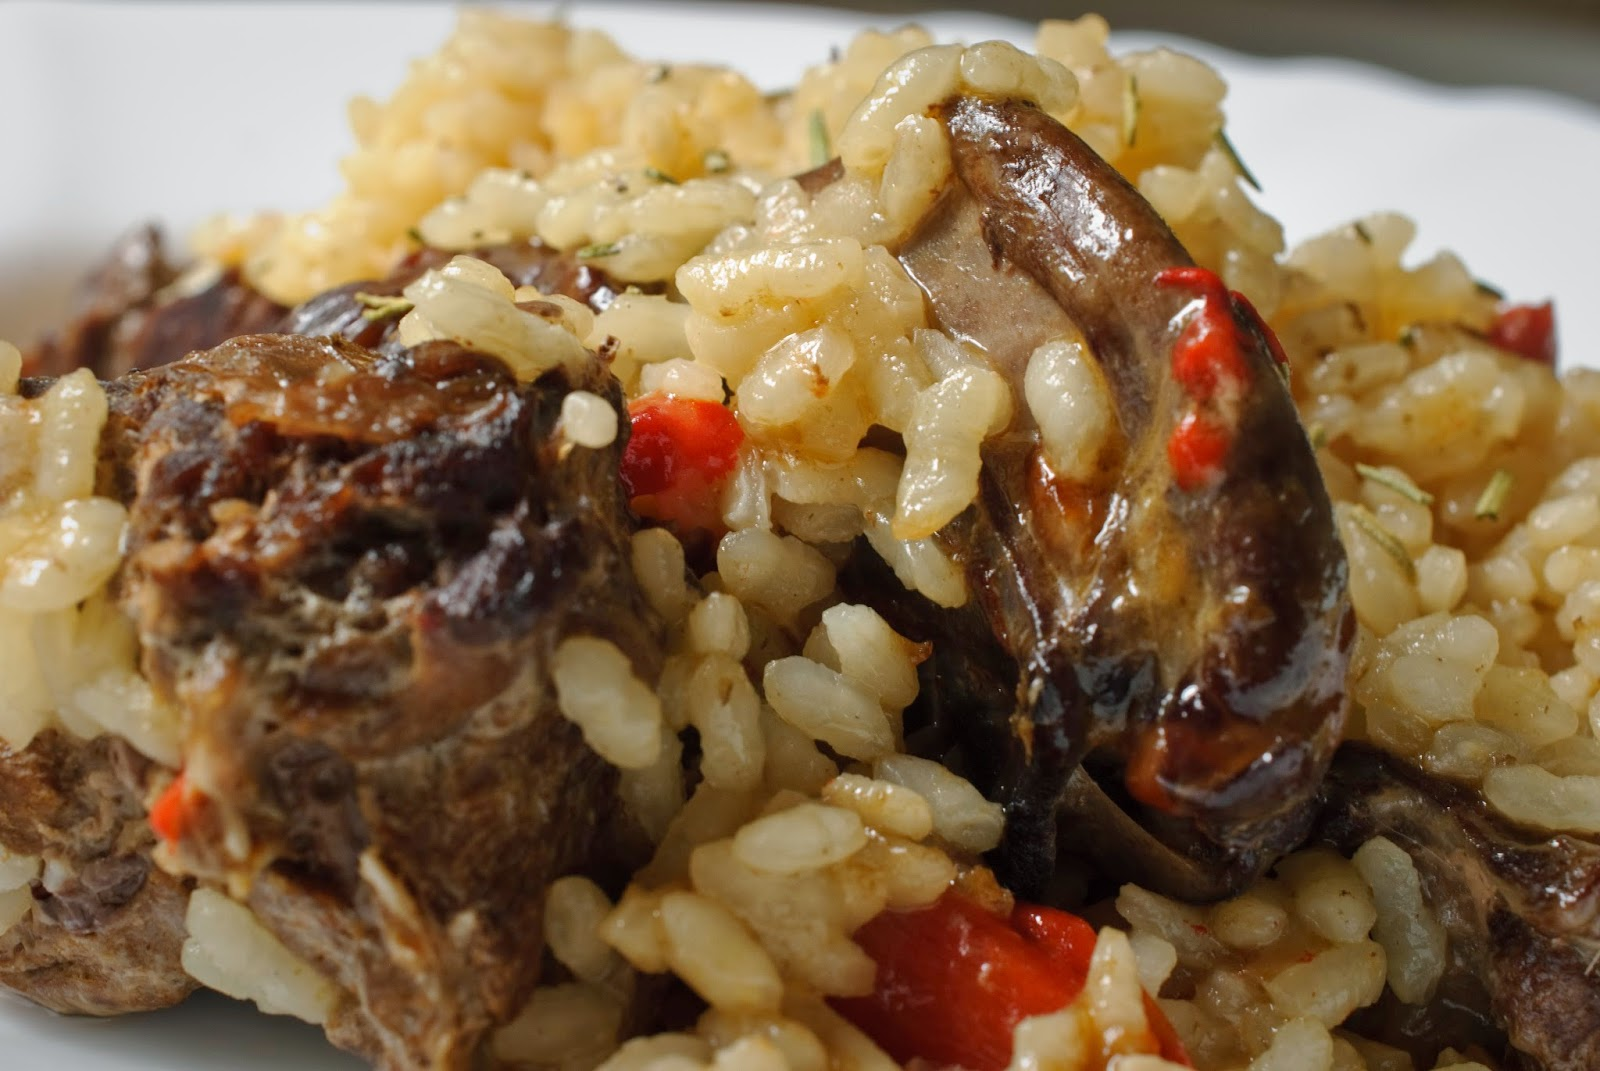 Arroz con liebre; rice with hare